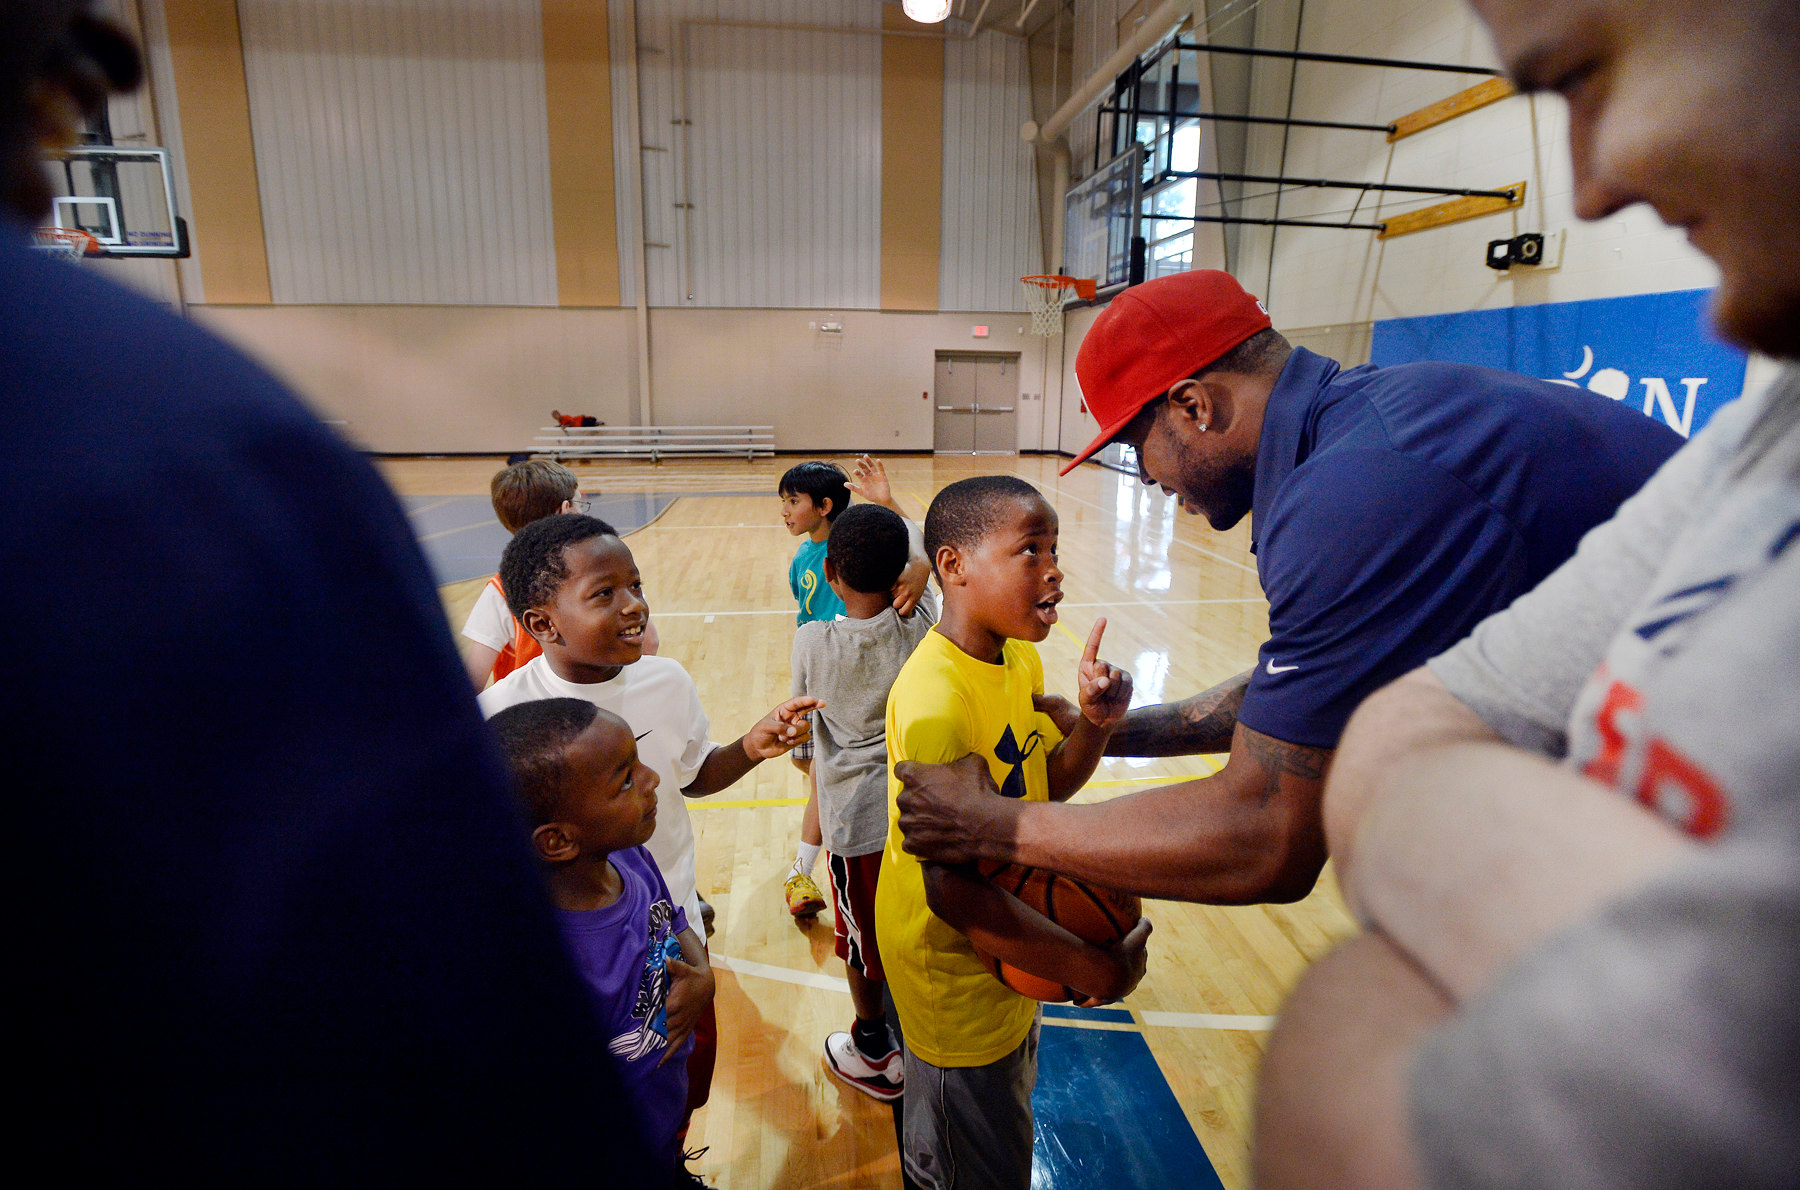 Third Place | SportsMykal McEldowney, The Greenville NewsWashington Wizards forward and former Clemson standout Trevor Booker gets an earful from a camper during the Trevor Booker Basketball Camp at the Mauldin Recreation Center on June 9, 2014. {quote}You need to be tough under the basket,{quote} said Booker. {quote}I make shots, I don't rebound,{quote} the camper replied.